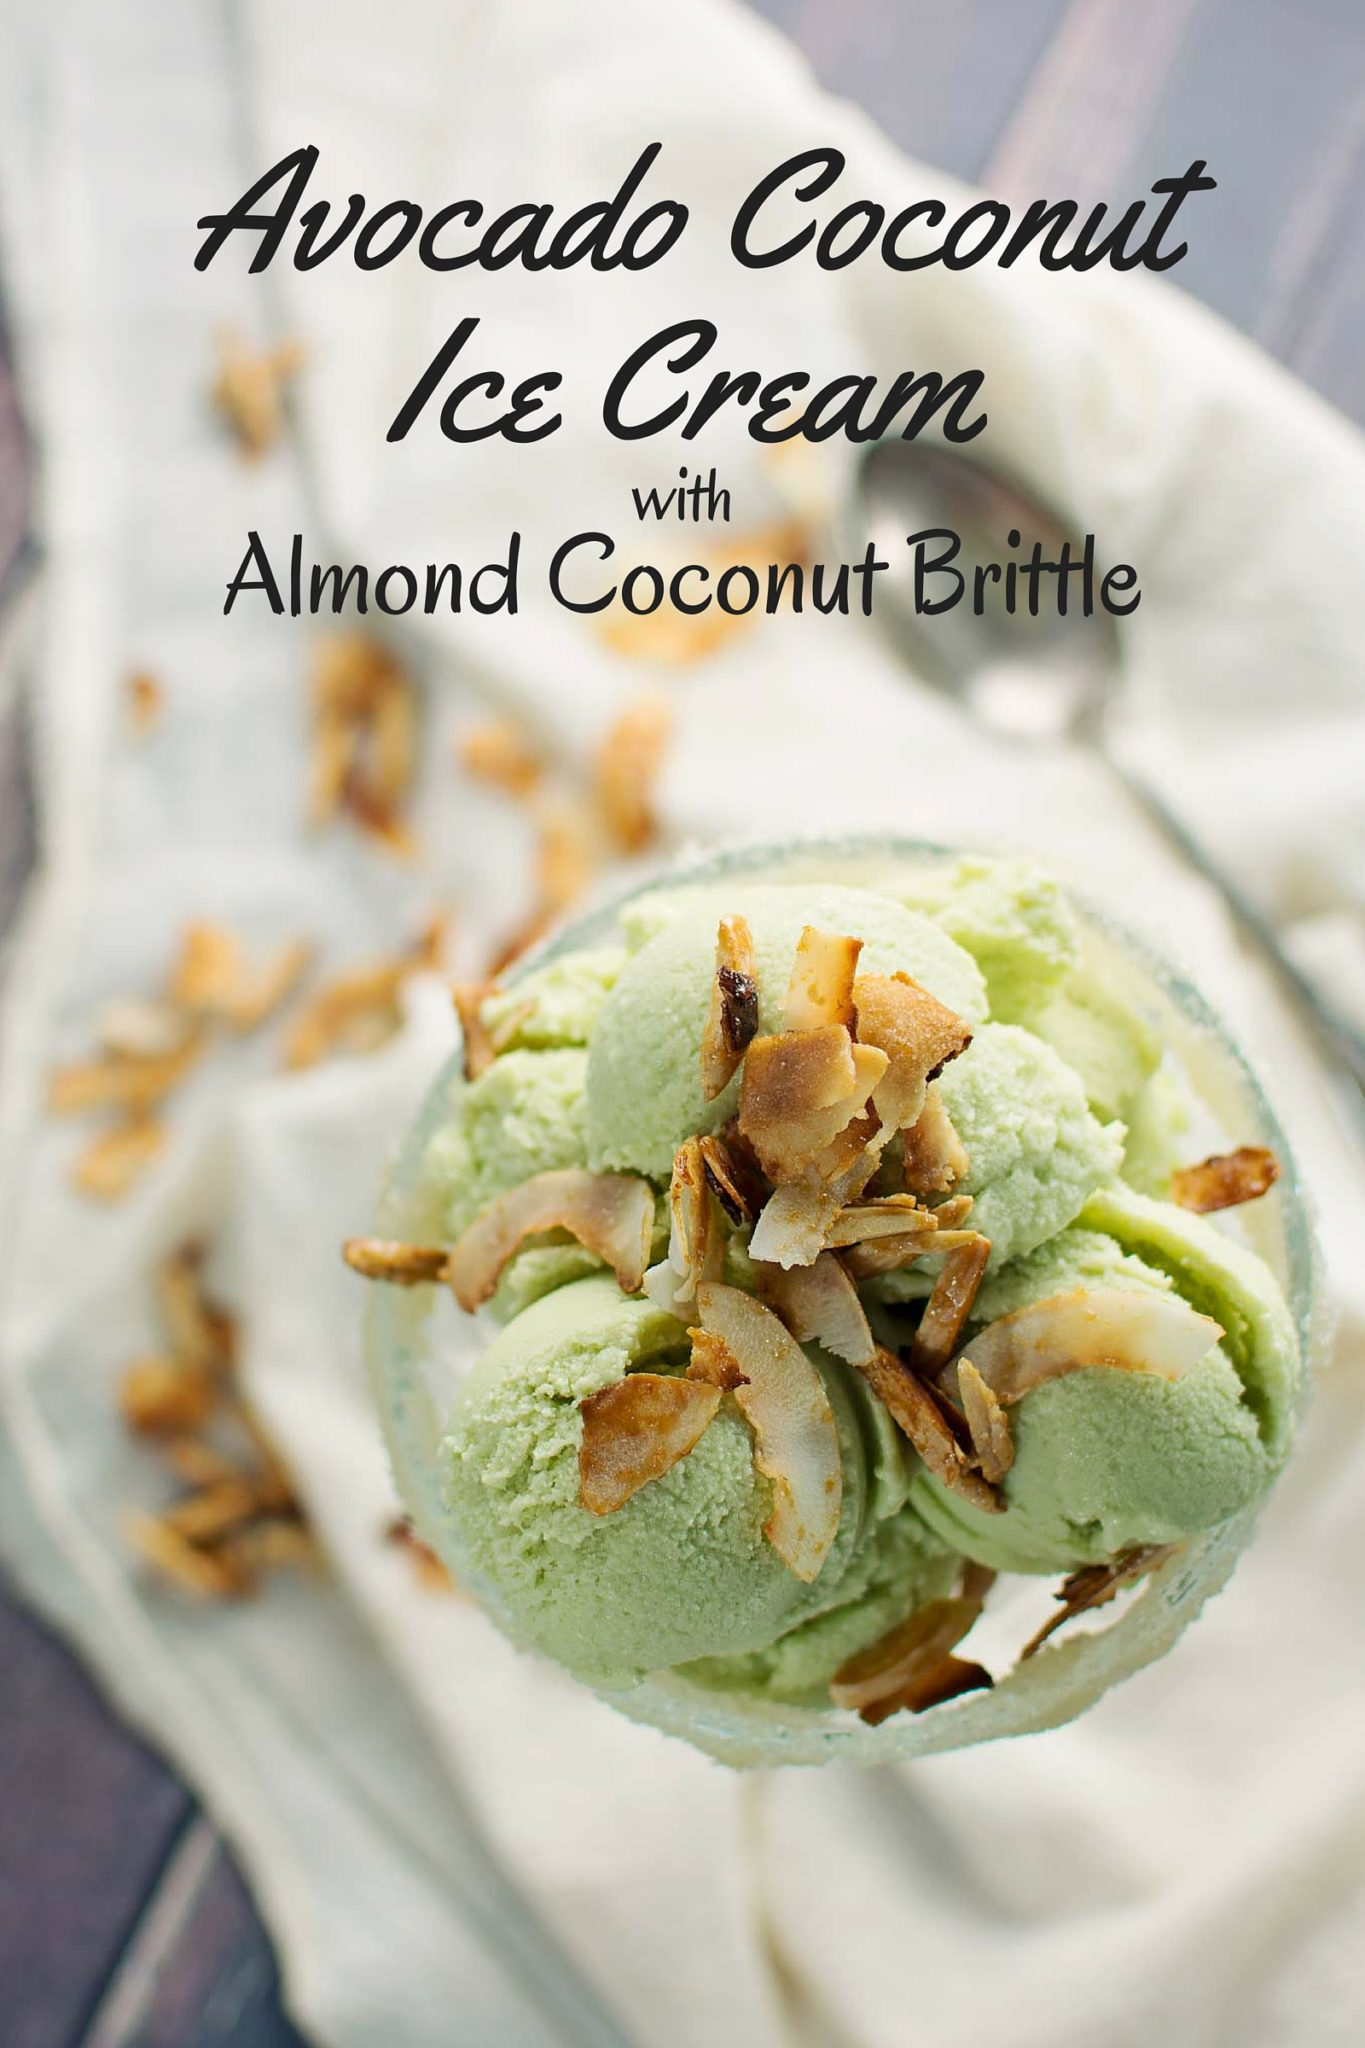 This Avocado Ice Cream has been upgraded with the addition of coconut milk and coconut almond brittle! - Recipe @LittleFiggyFood